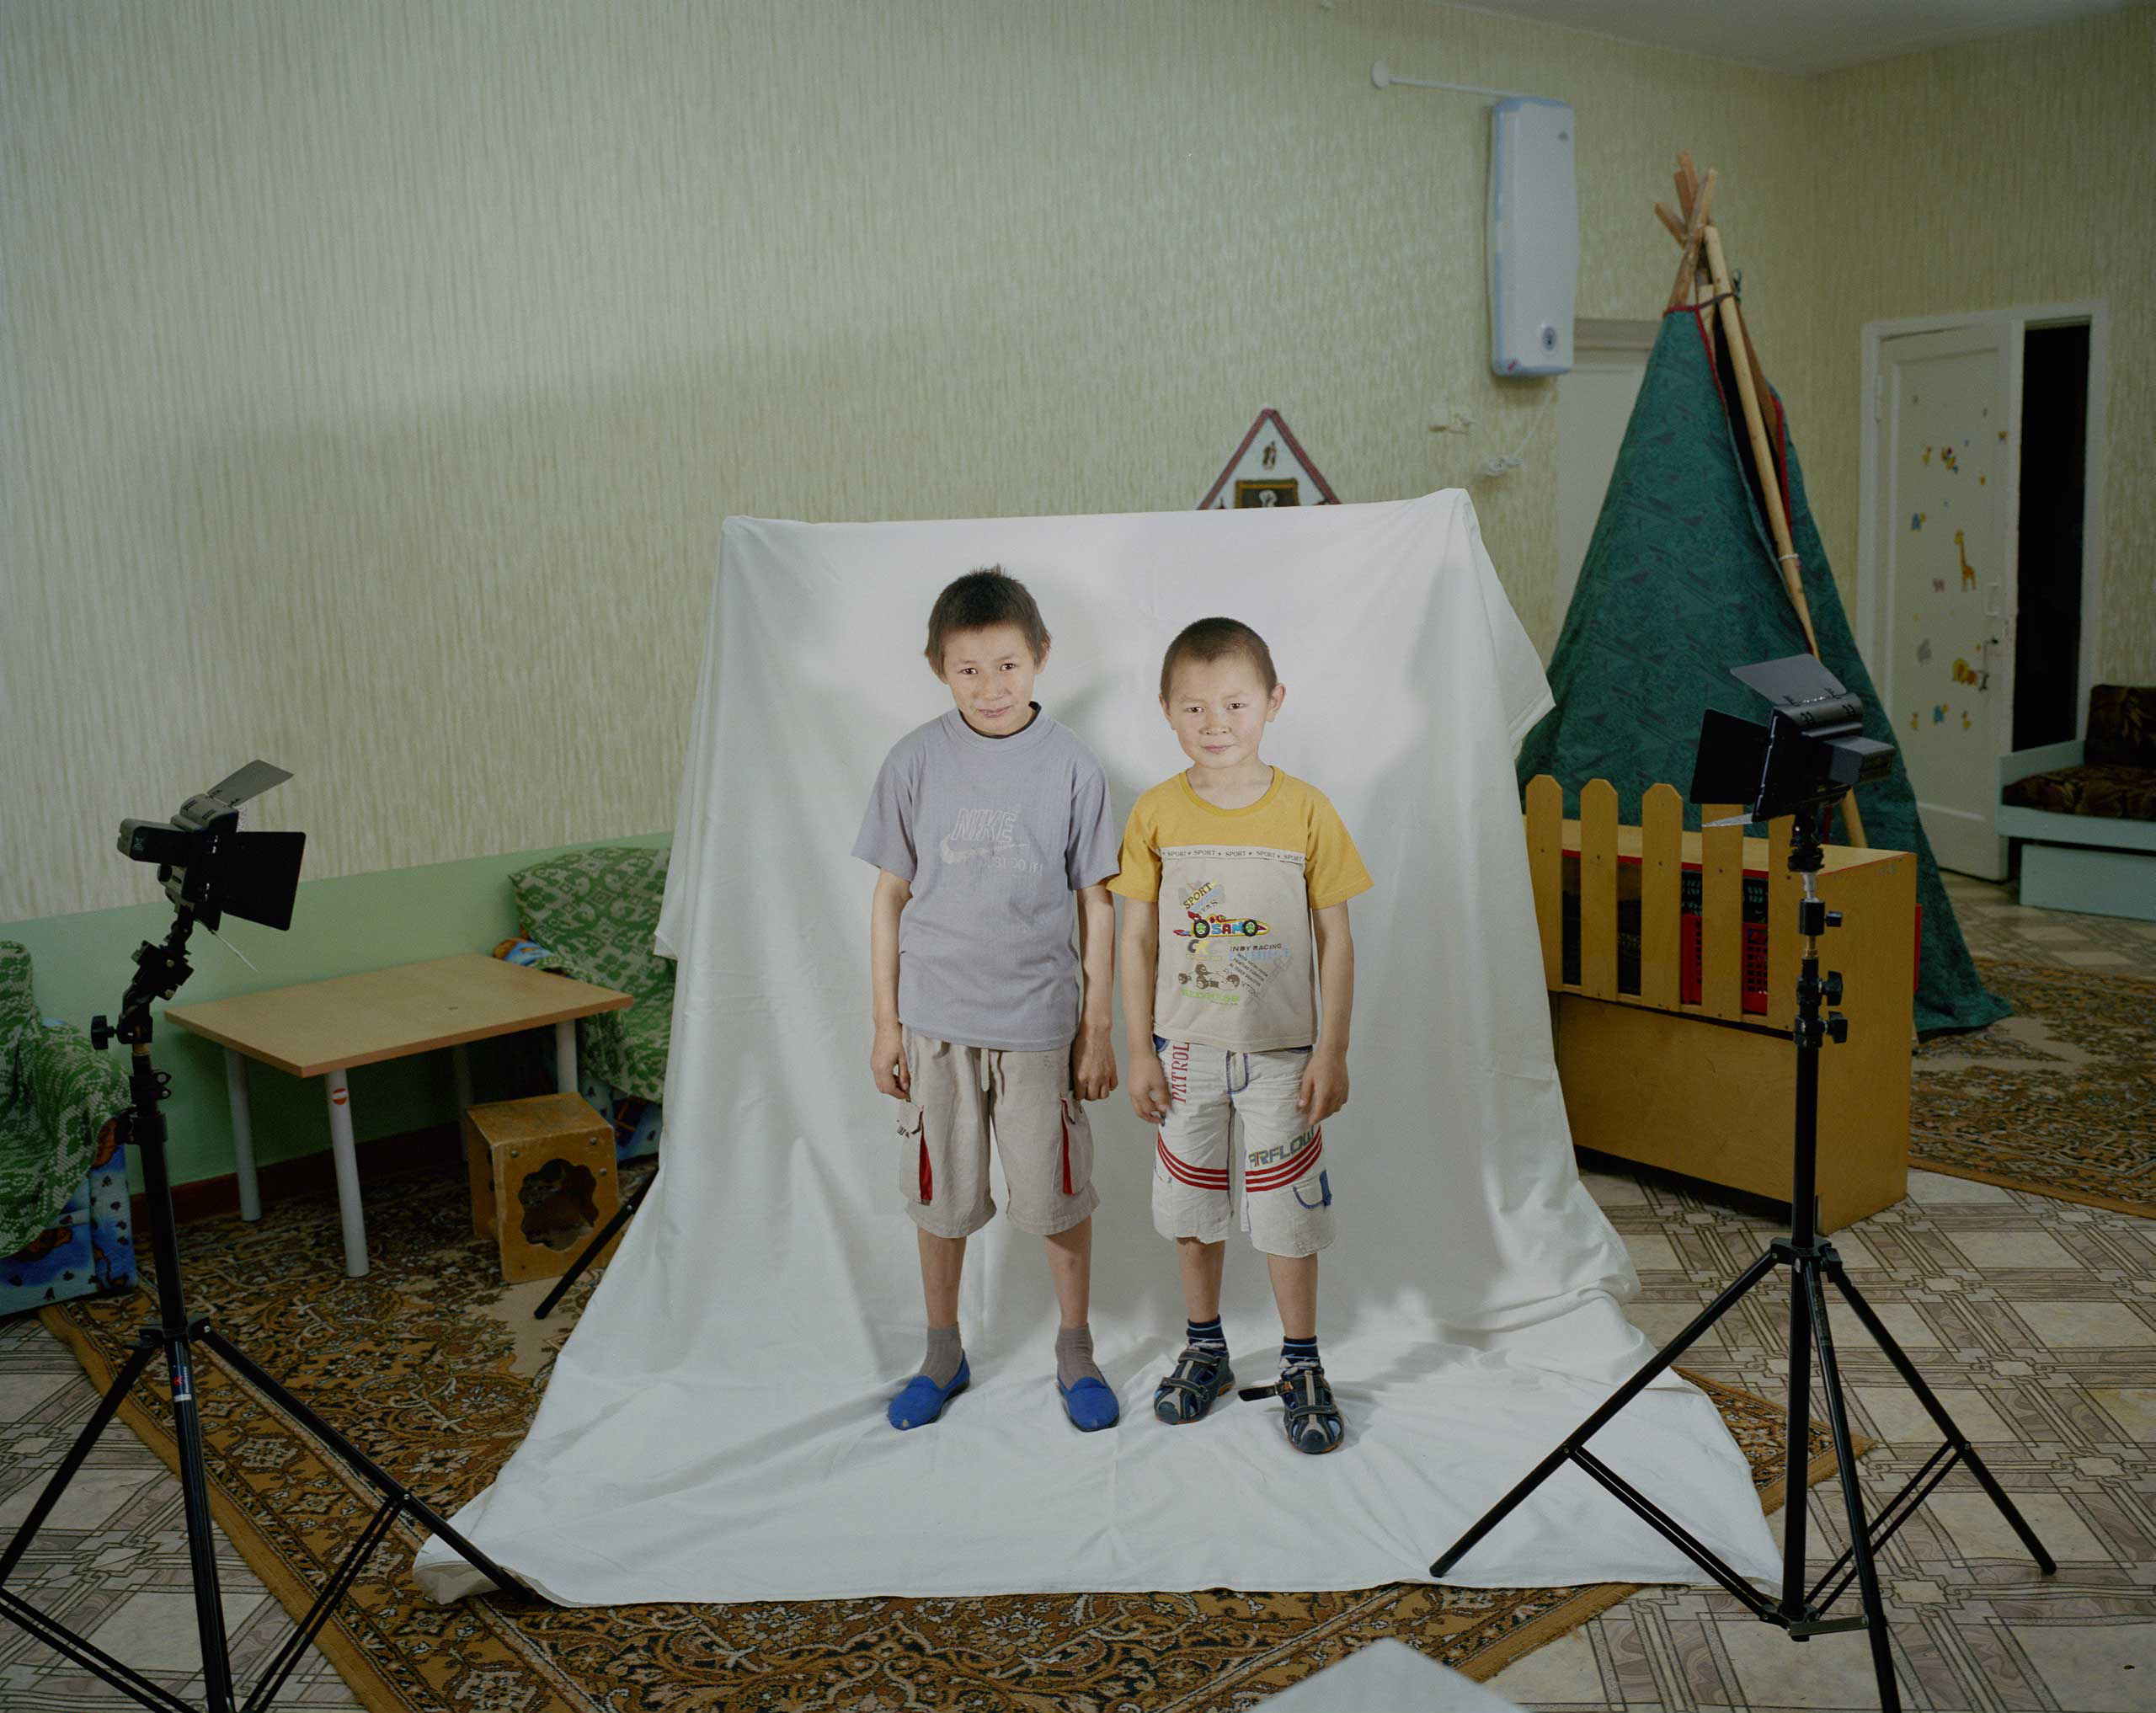 Two boys pose for a portrait.